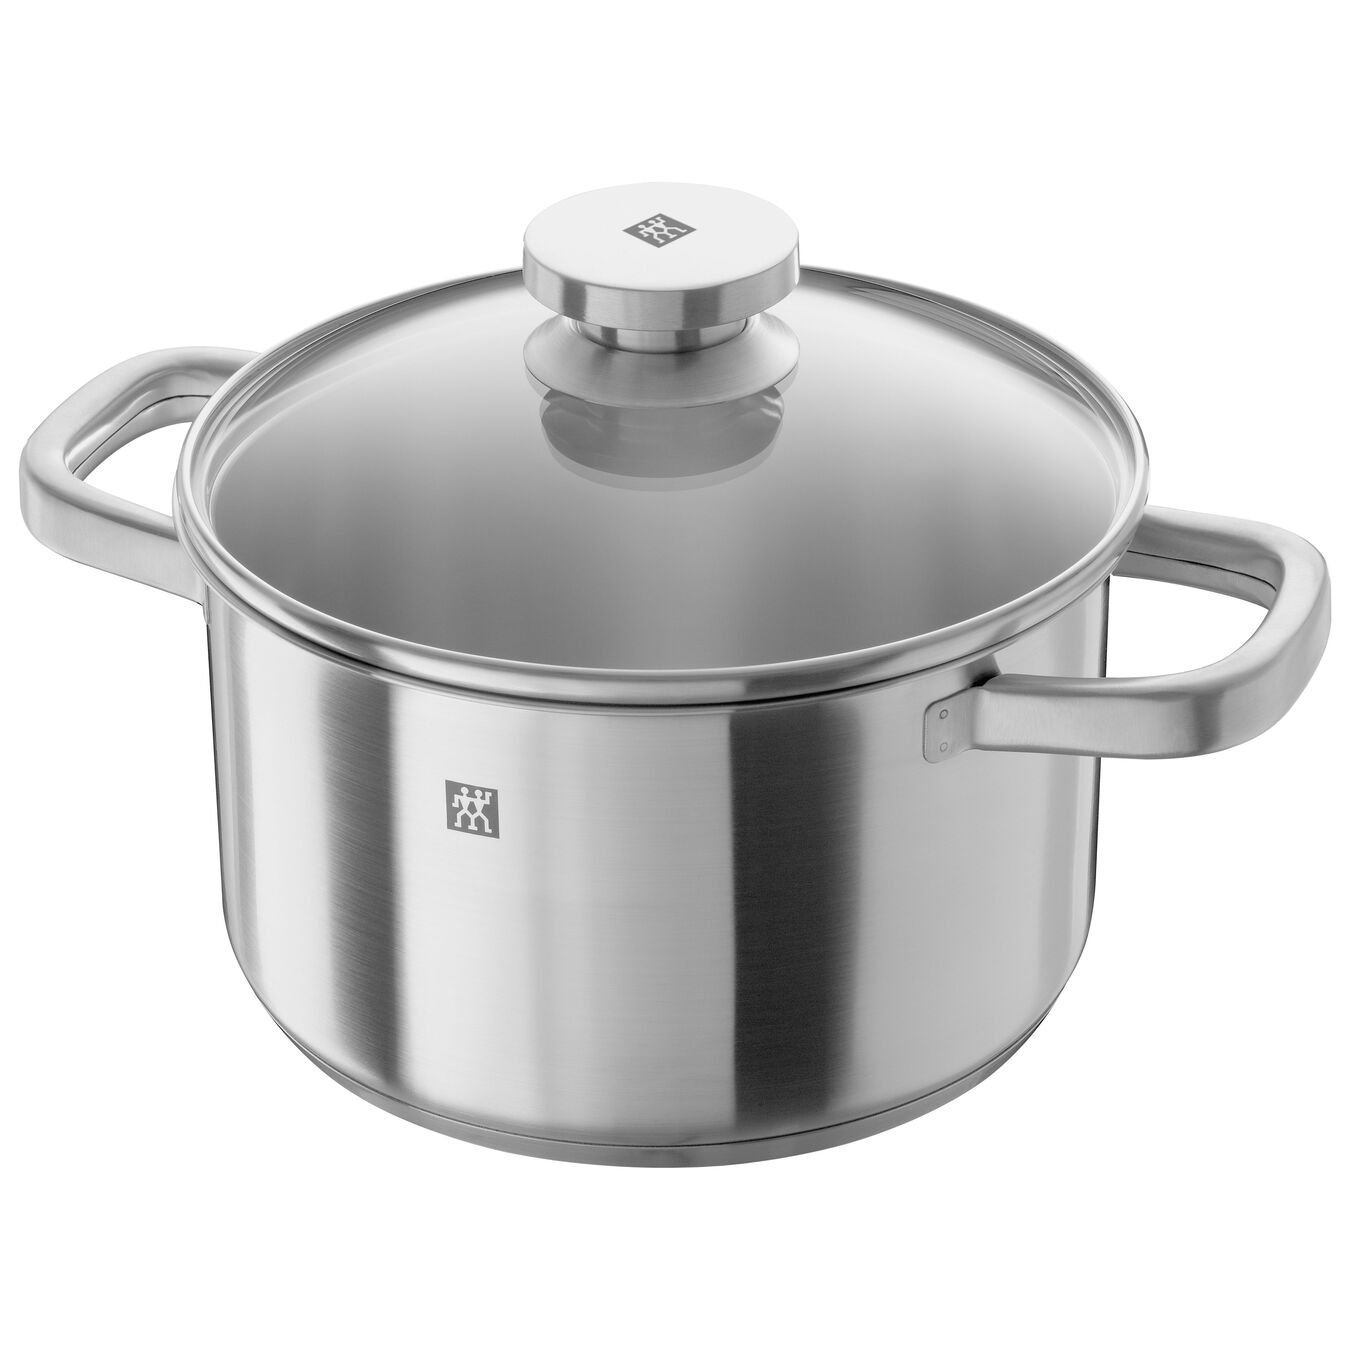 18/10 Stainless Steel 3.6L Sauce Pot with lid,,large 1